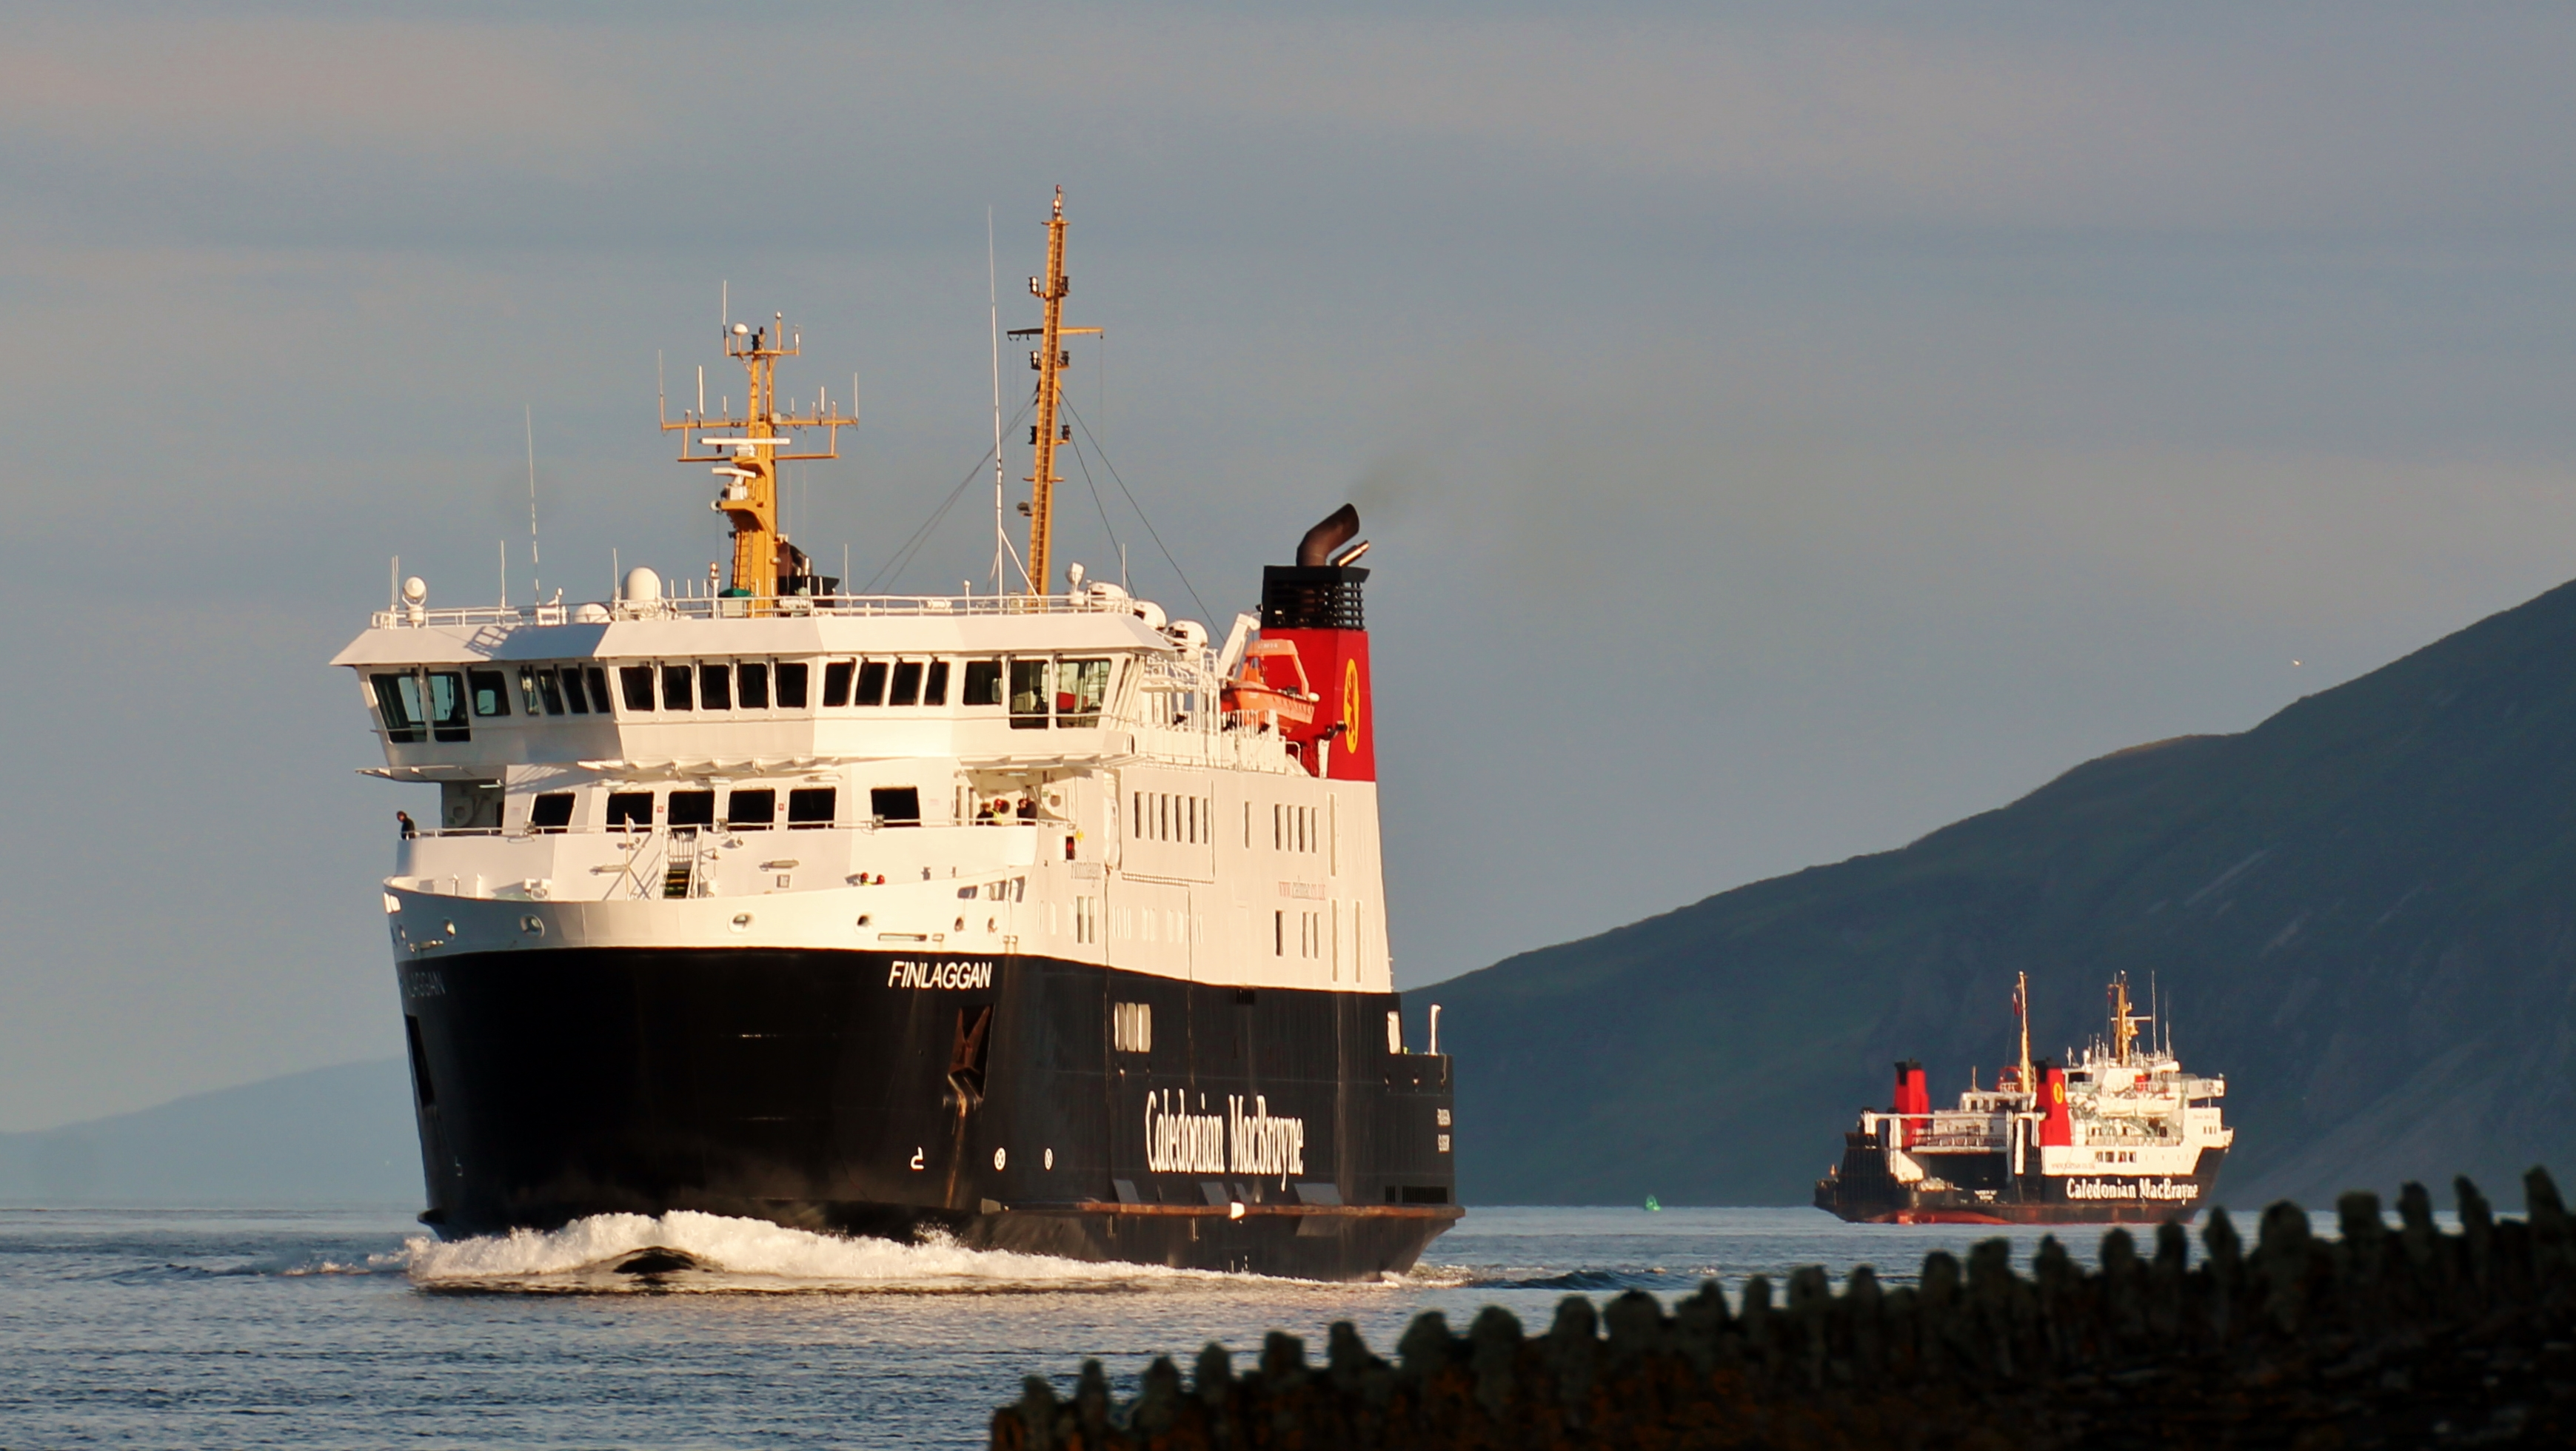 Finlaggan and Hebridean Isles in the Sound of Islay (Ships of CalMac)